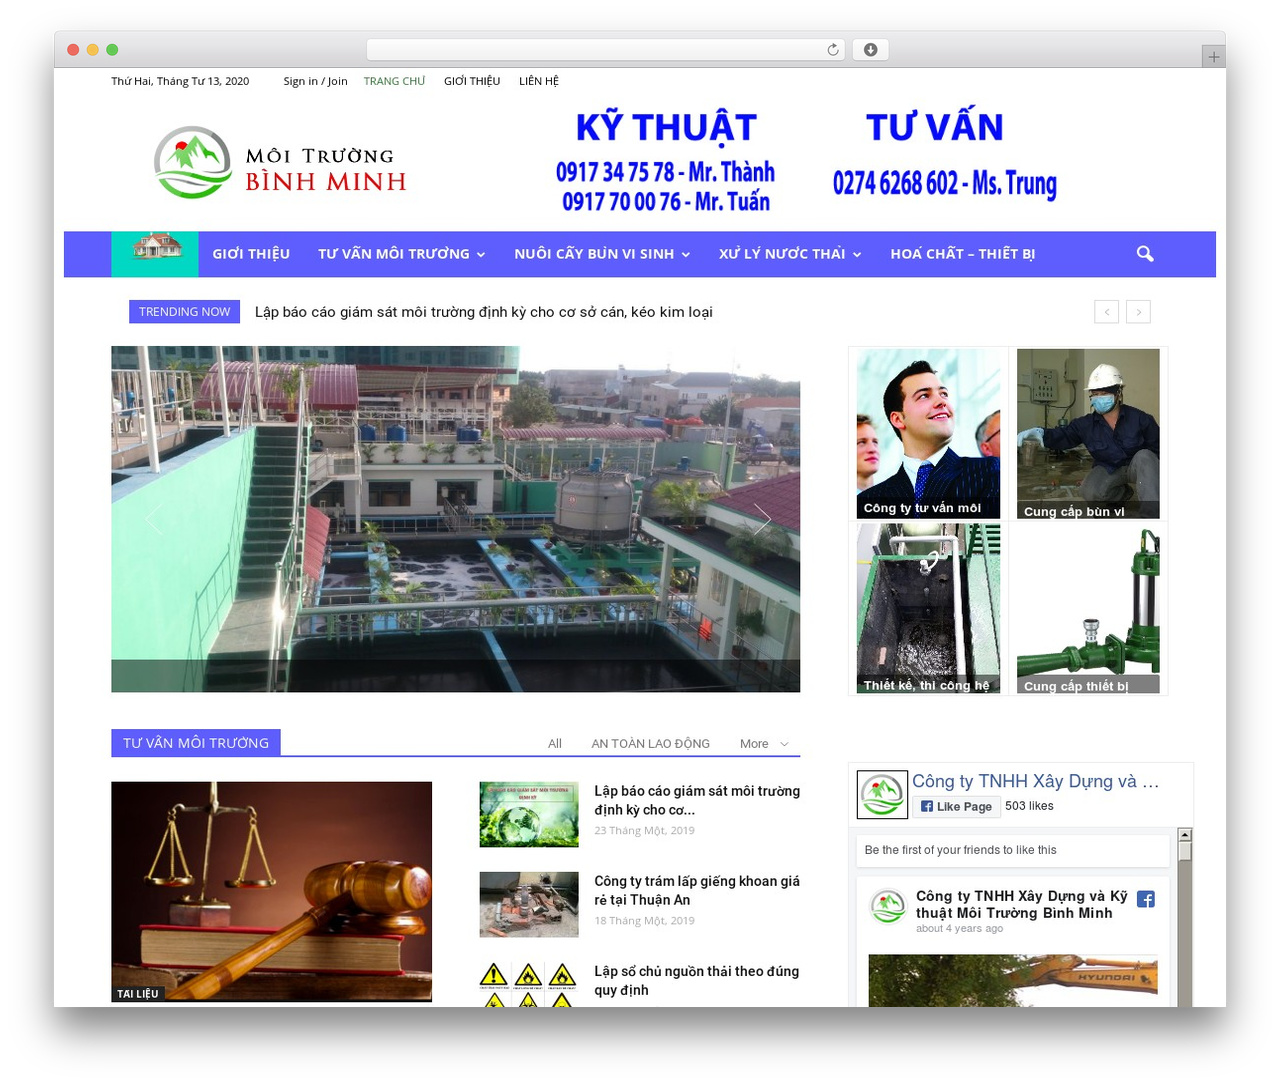 Newspaper newspaper WordPress theme - moitruongbinhminh.com